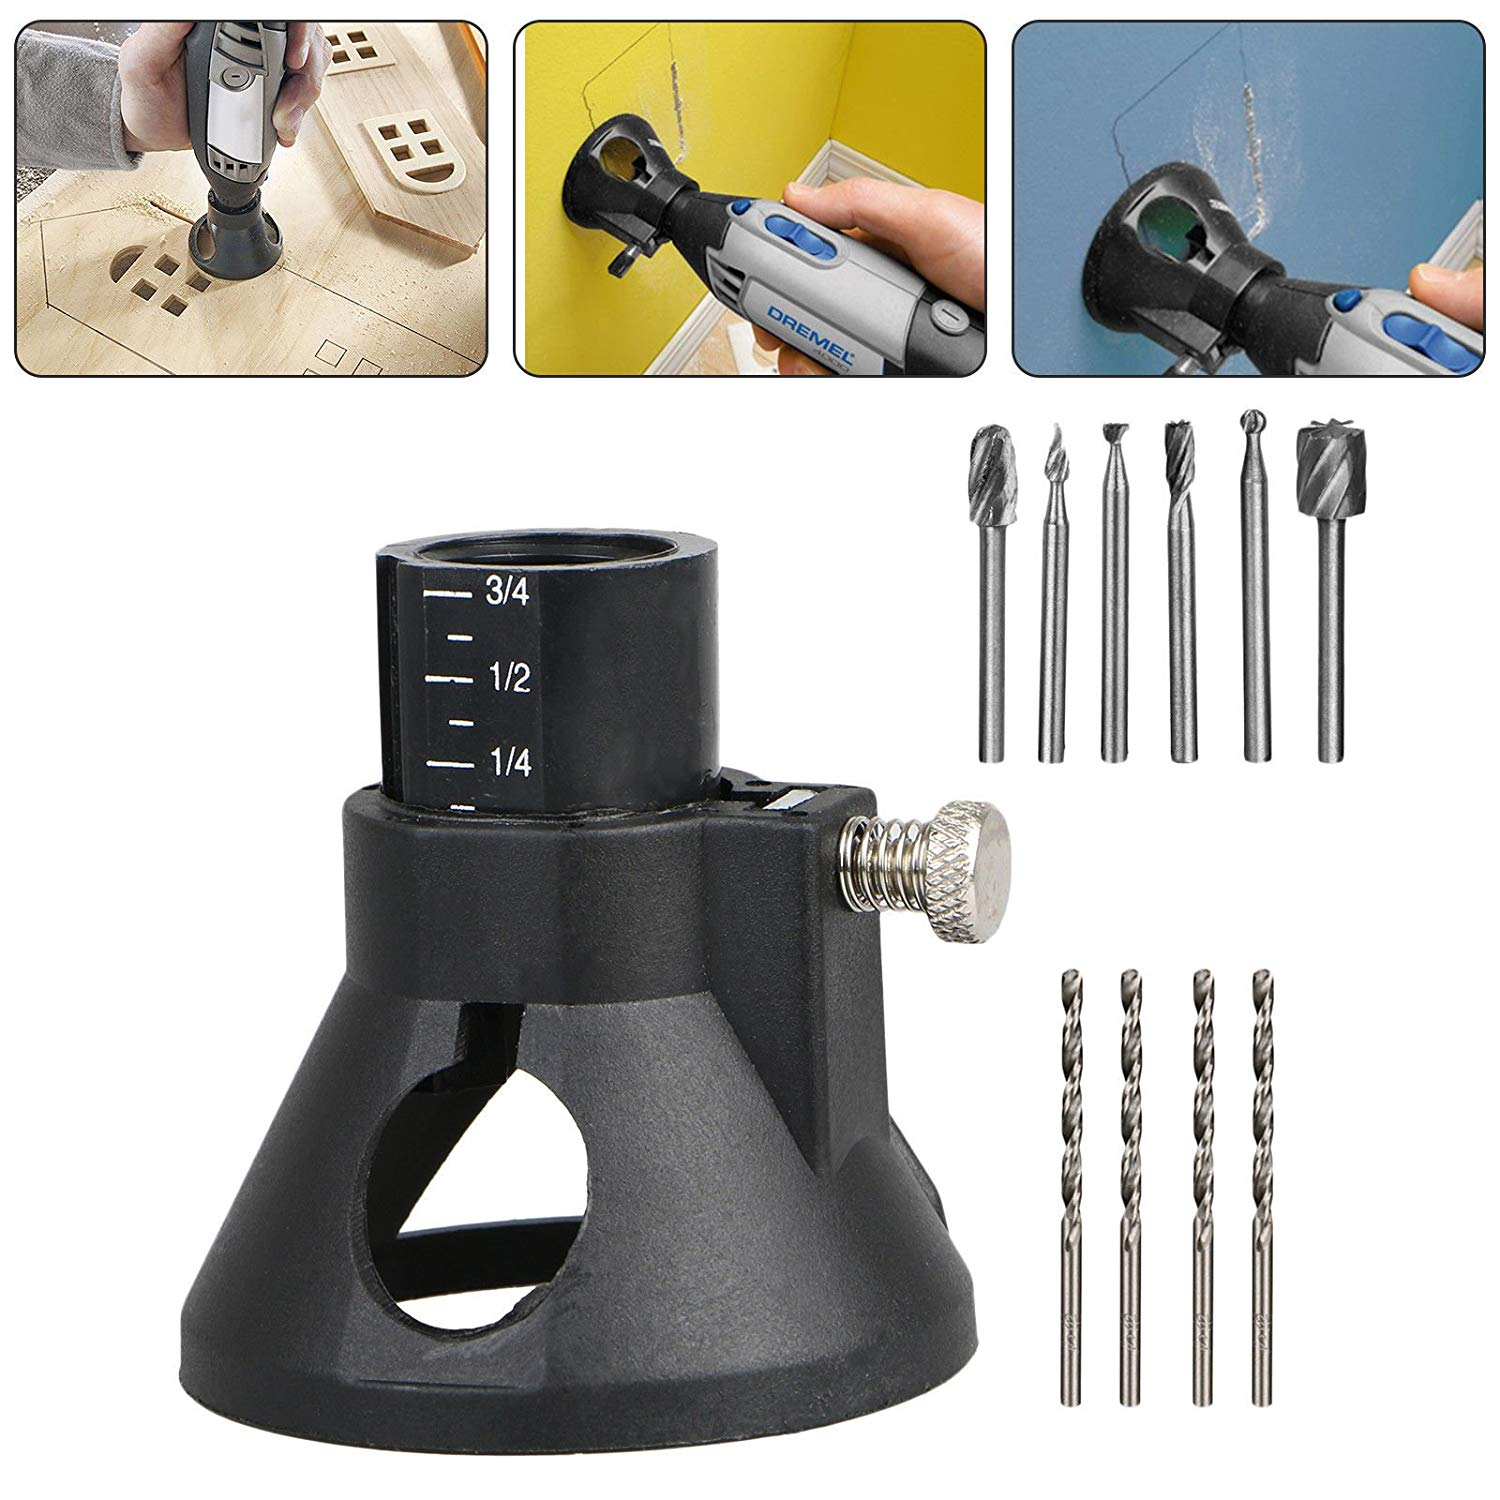 Cheap Drill Guide Lowes, find Drill Guide Lowes deals on line at